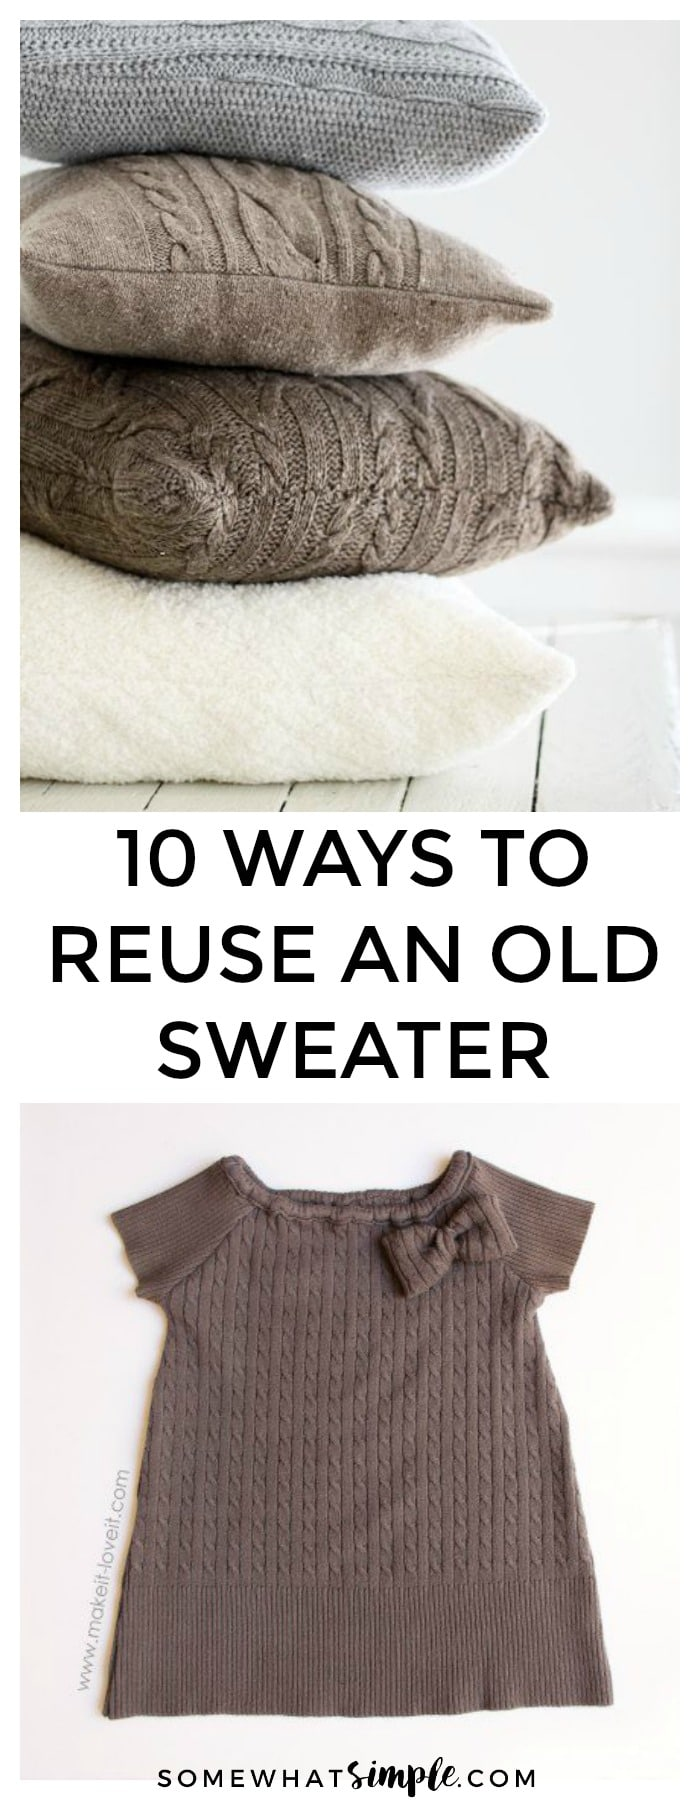 Before you toss your old, unwanted sweaters, think again. Here are 10 Not So Ugly Christmas Sweater Ideas that will turn even the ugliest of sweaters into something cute and functional! via @somewhatsimple